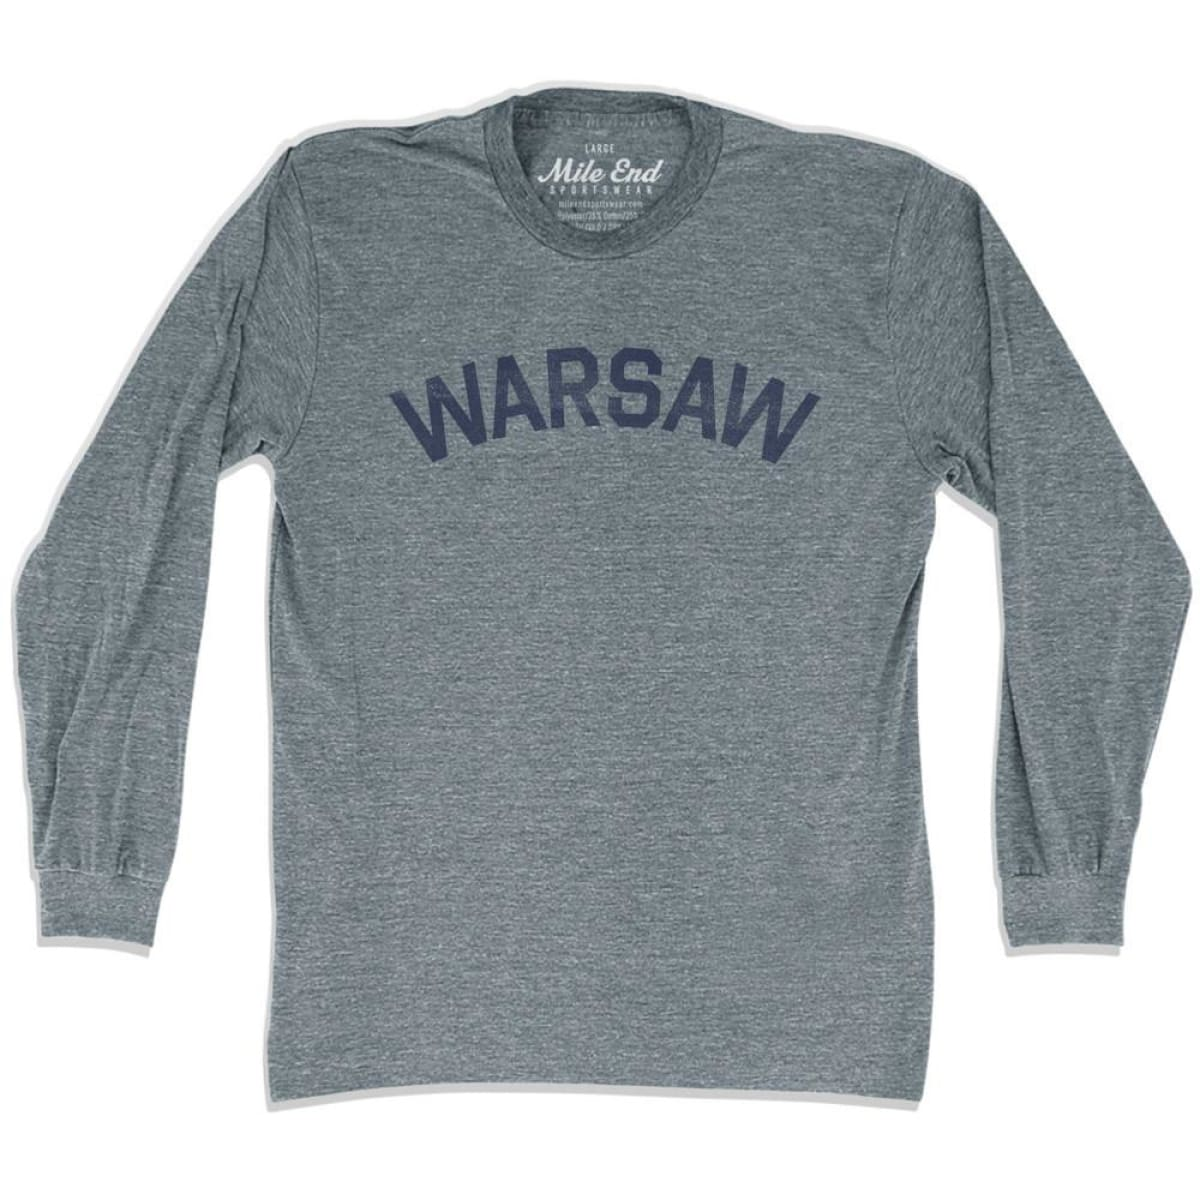 Warsaw City Vintage Long Sleeve T-Shirt - Athletic Grey / Adult X-Small - Mile End City